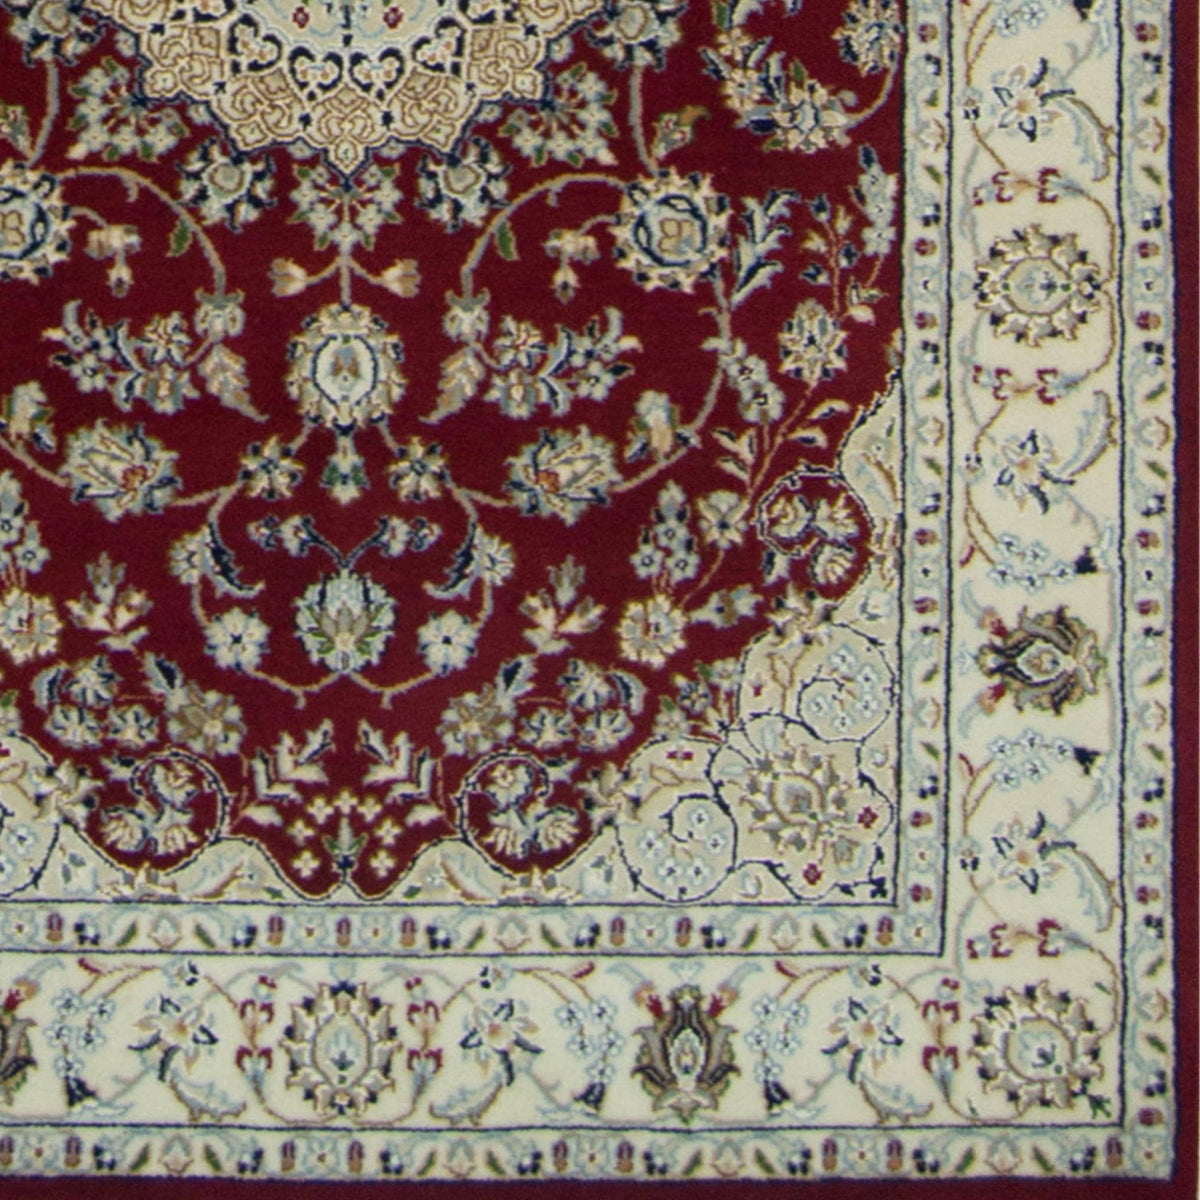 1 x 2 Meter_[product_tag]_handmade_Rug - House of Haghi.